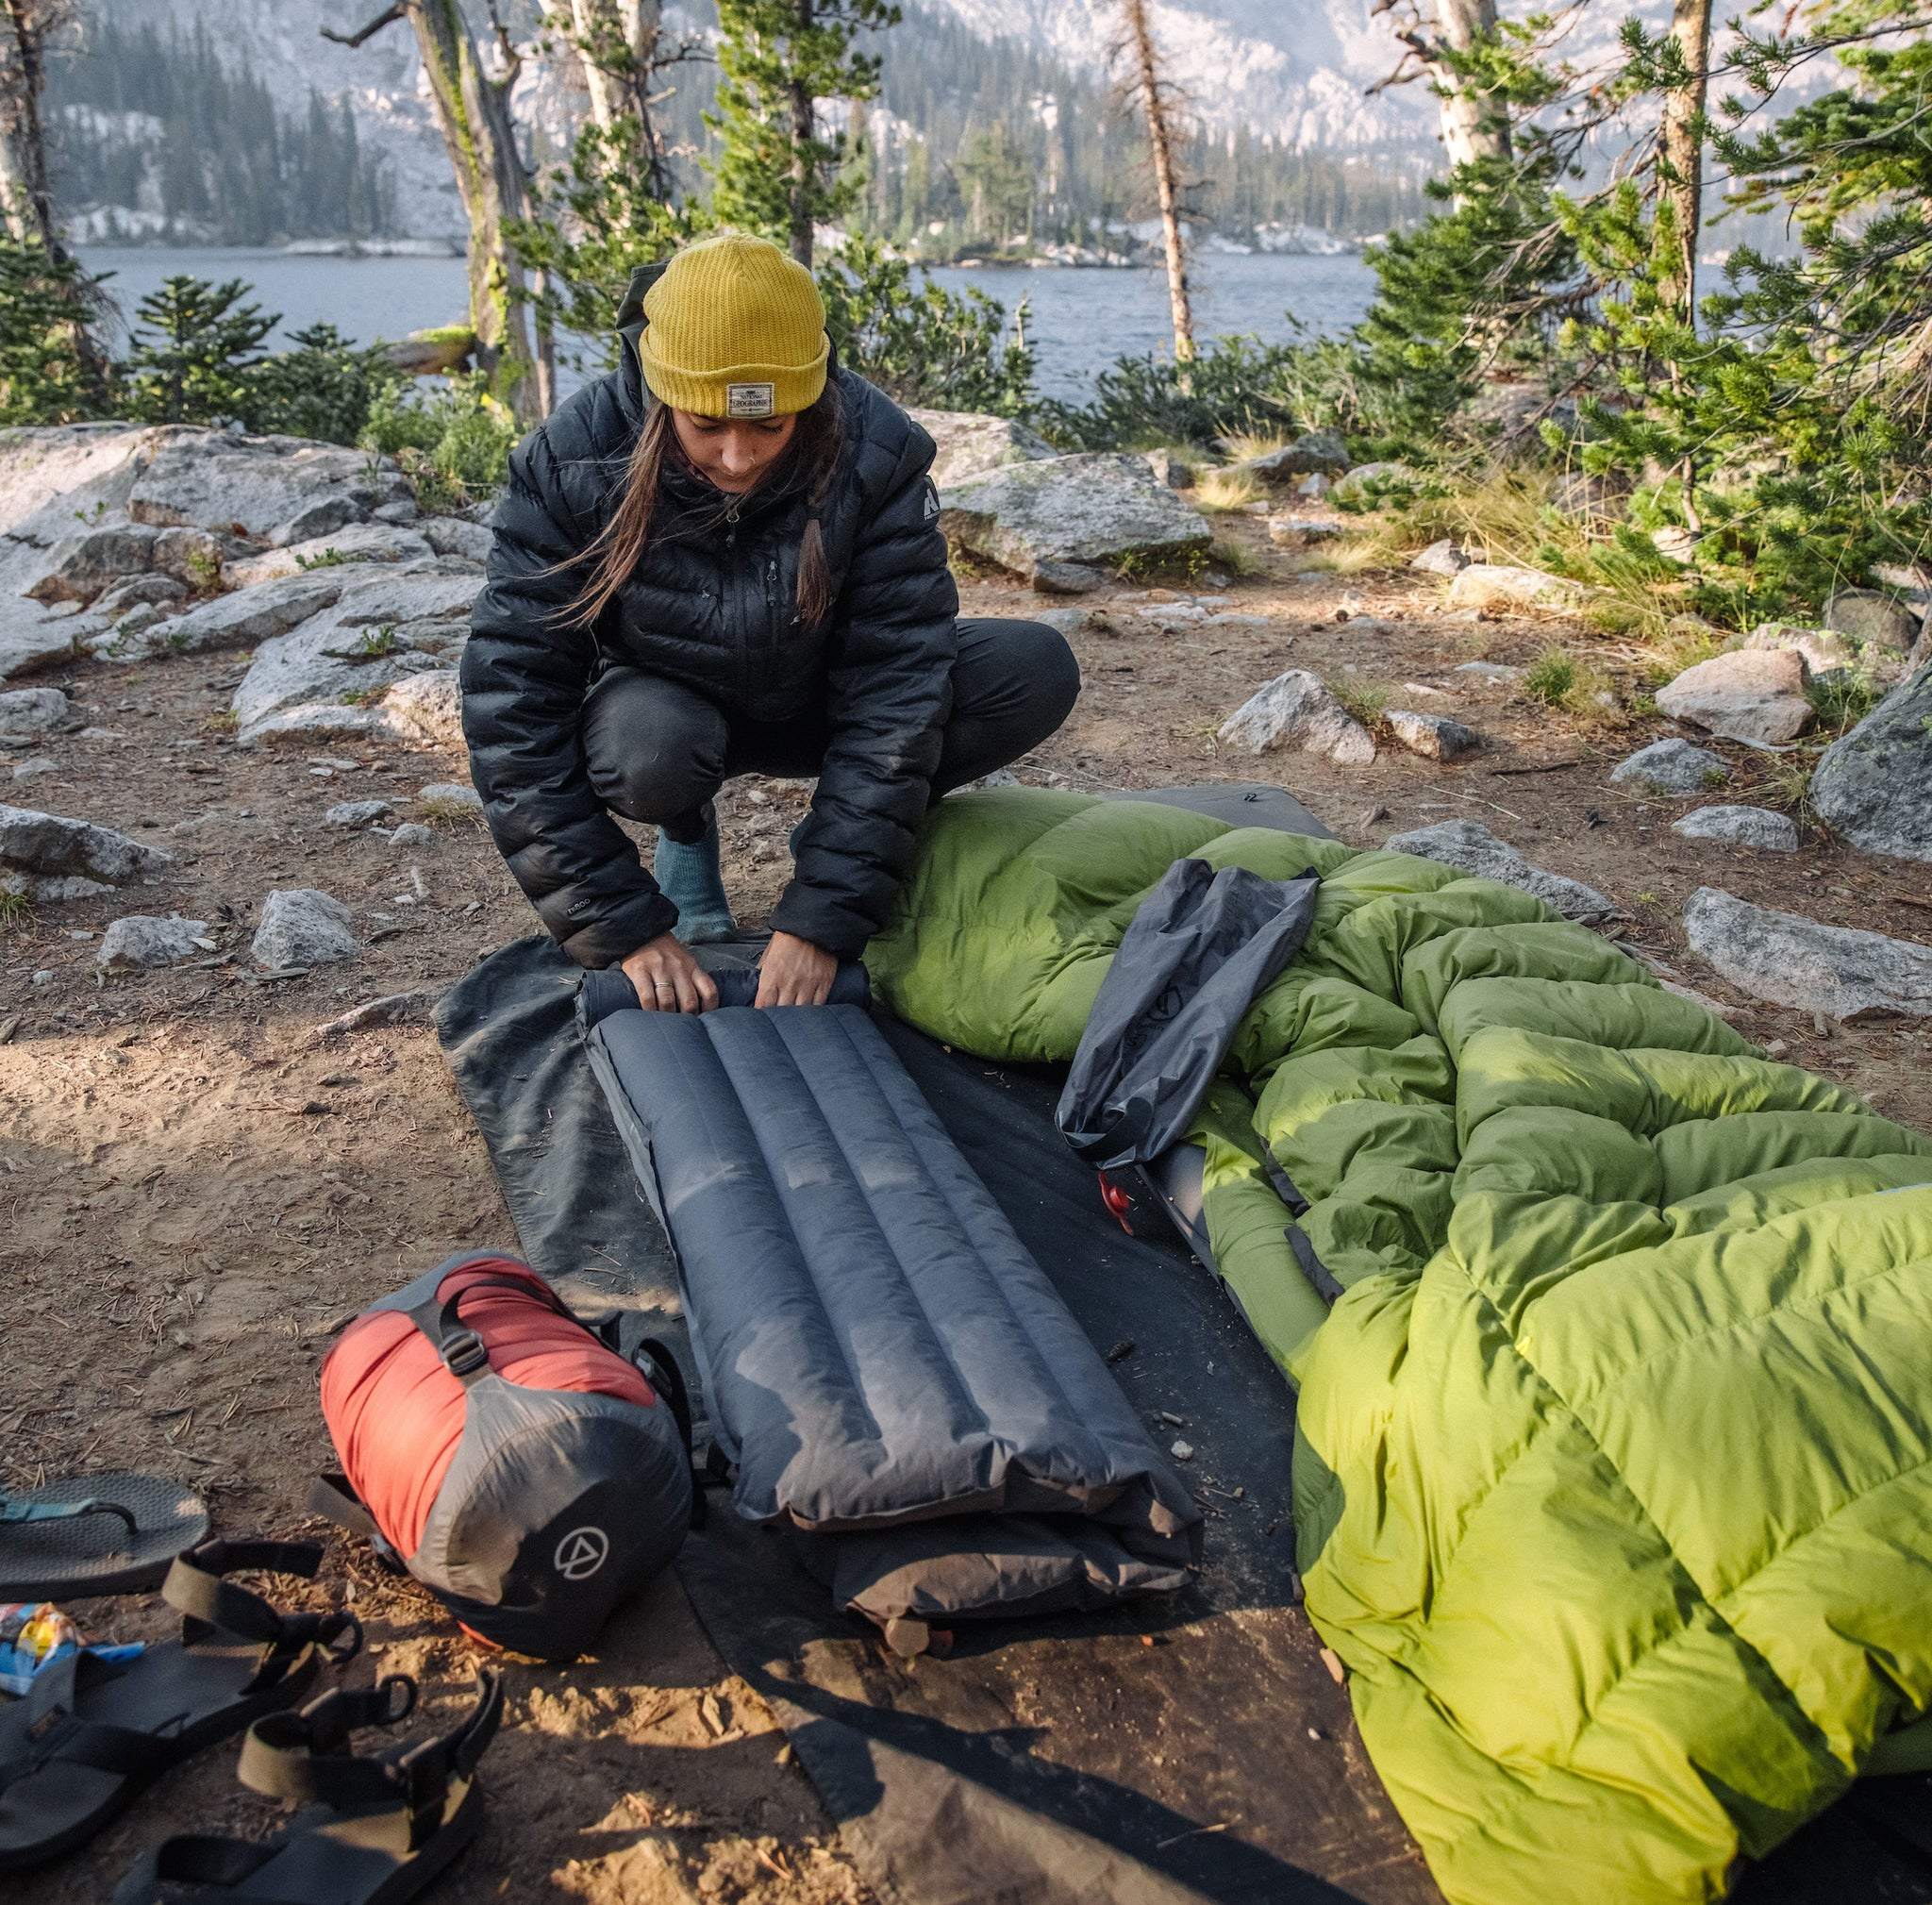 The Zenbivy Dry Sack features fully-welded seams for a watertight seal you can trust, instant compression through its high-speed mechanical valve, and durable yet lightweight construction.